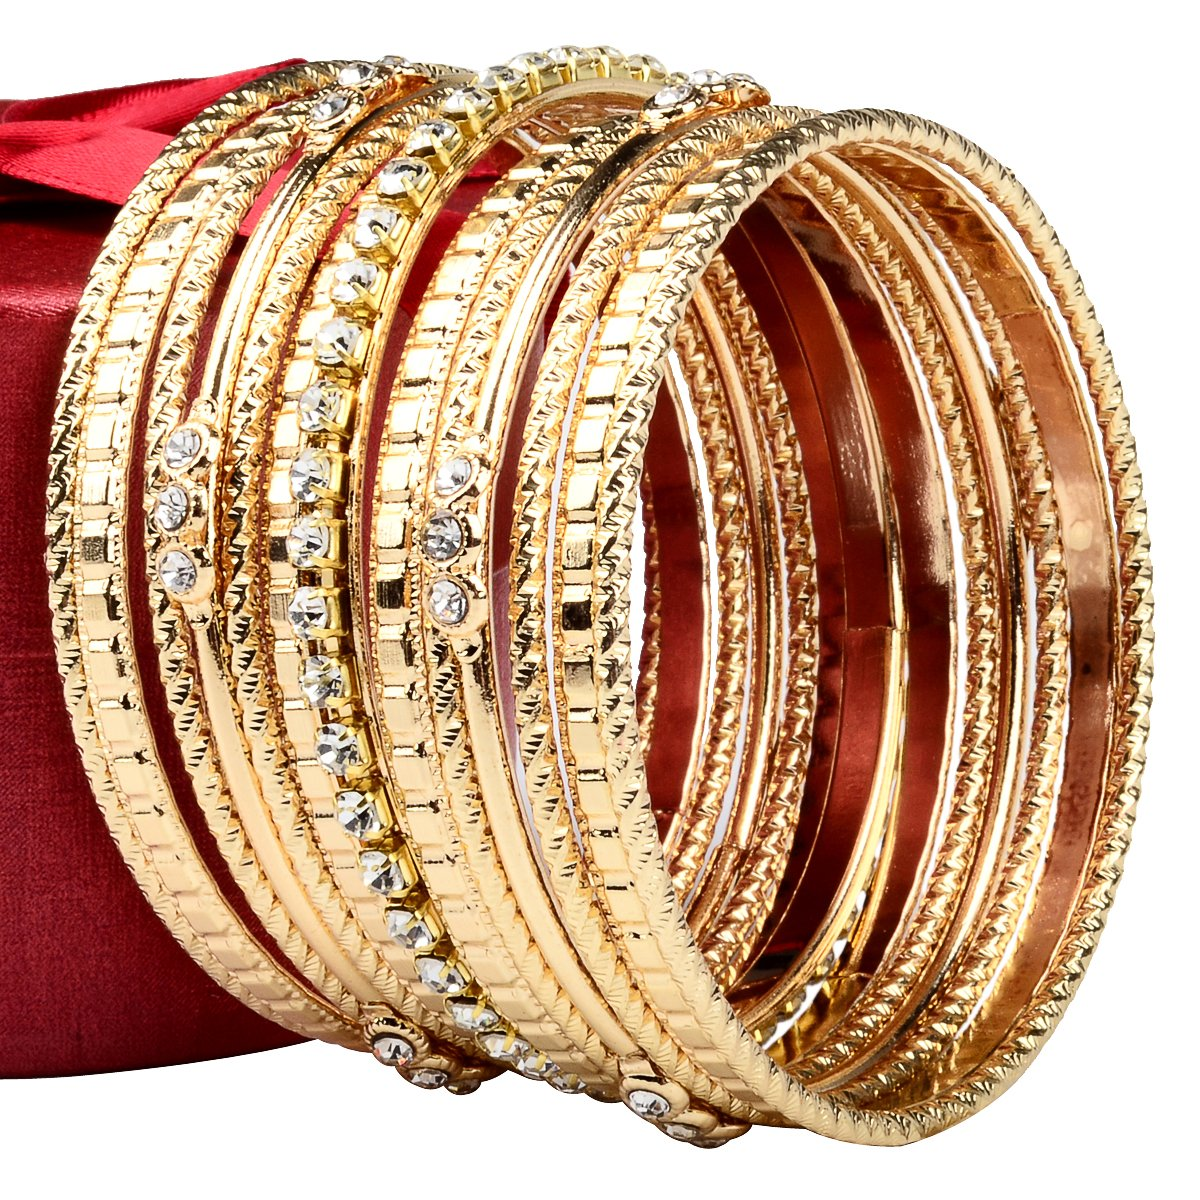 Stainless Steel High Polished Gold 13- Pieces Stackable Bangle Bracelet for Women